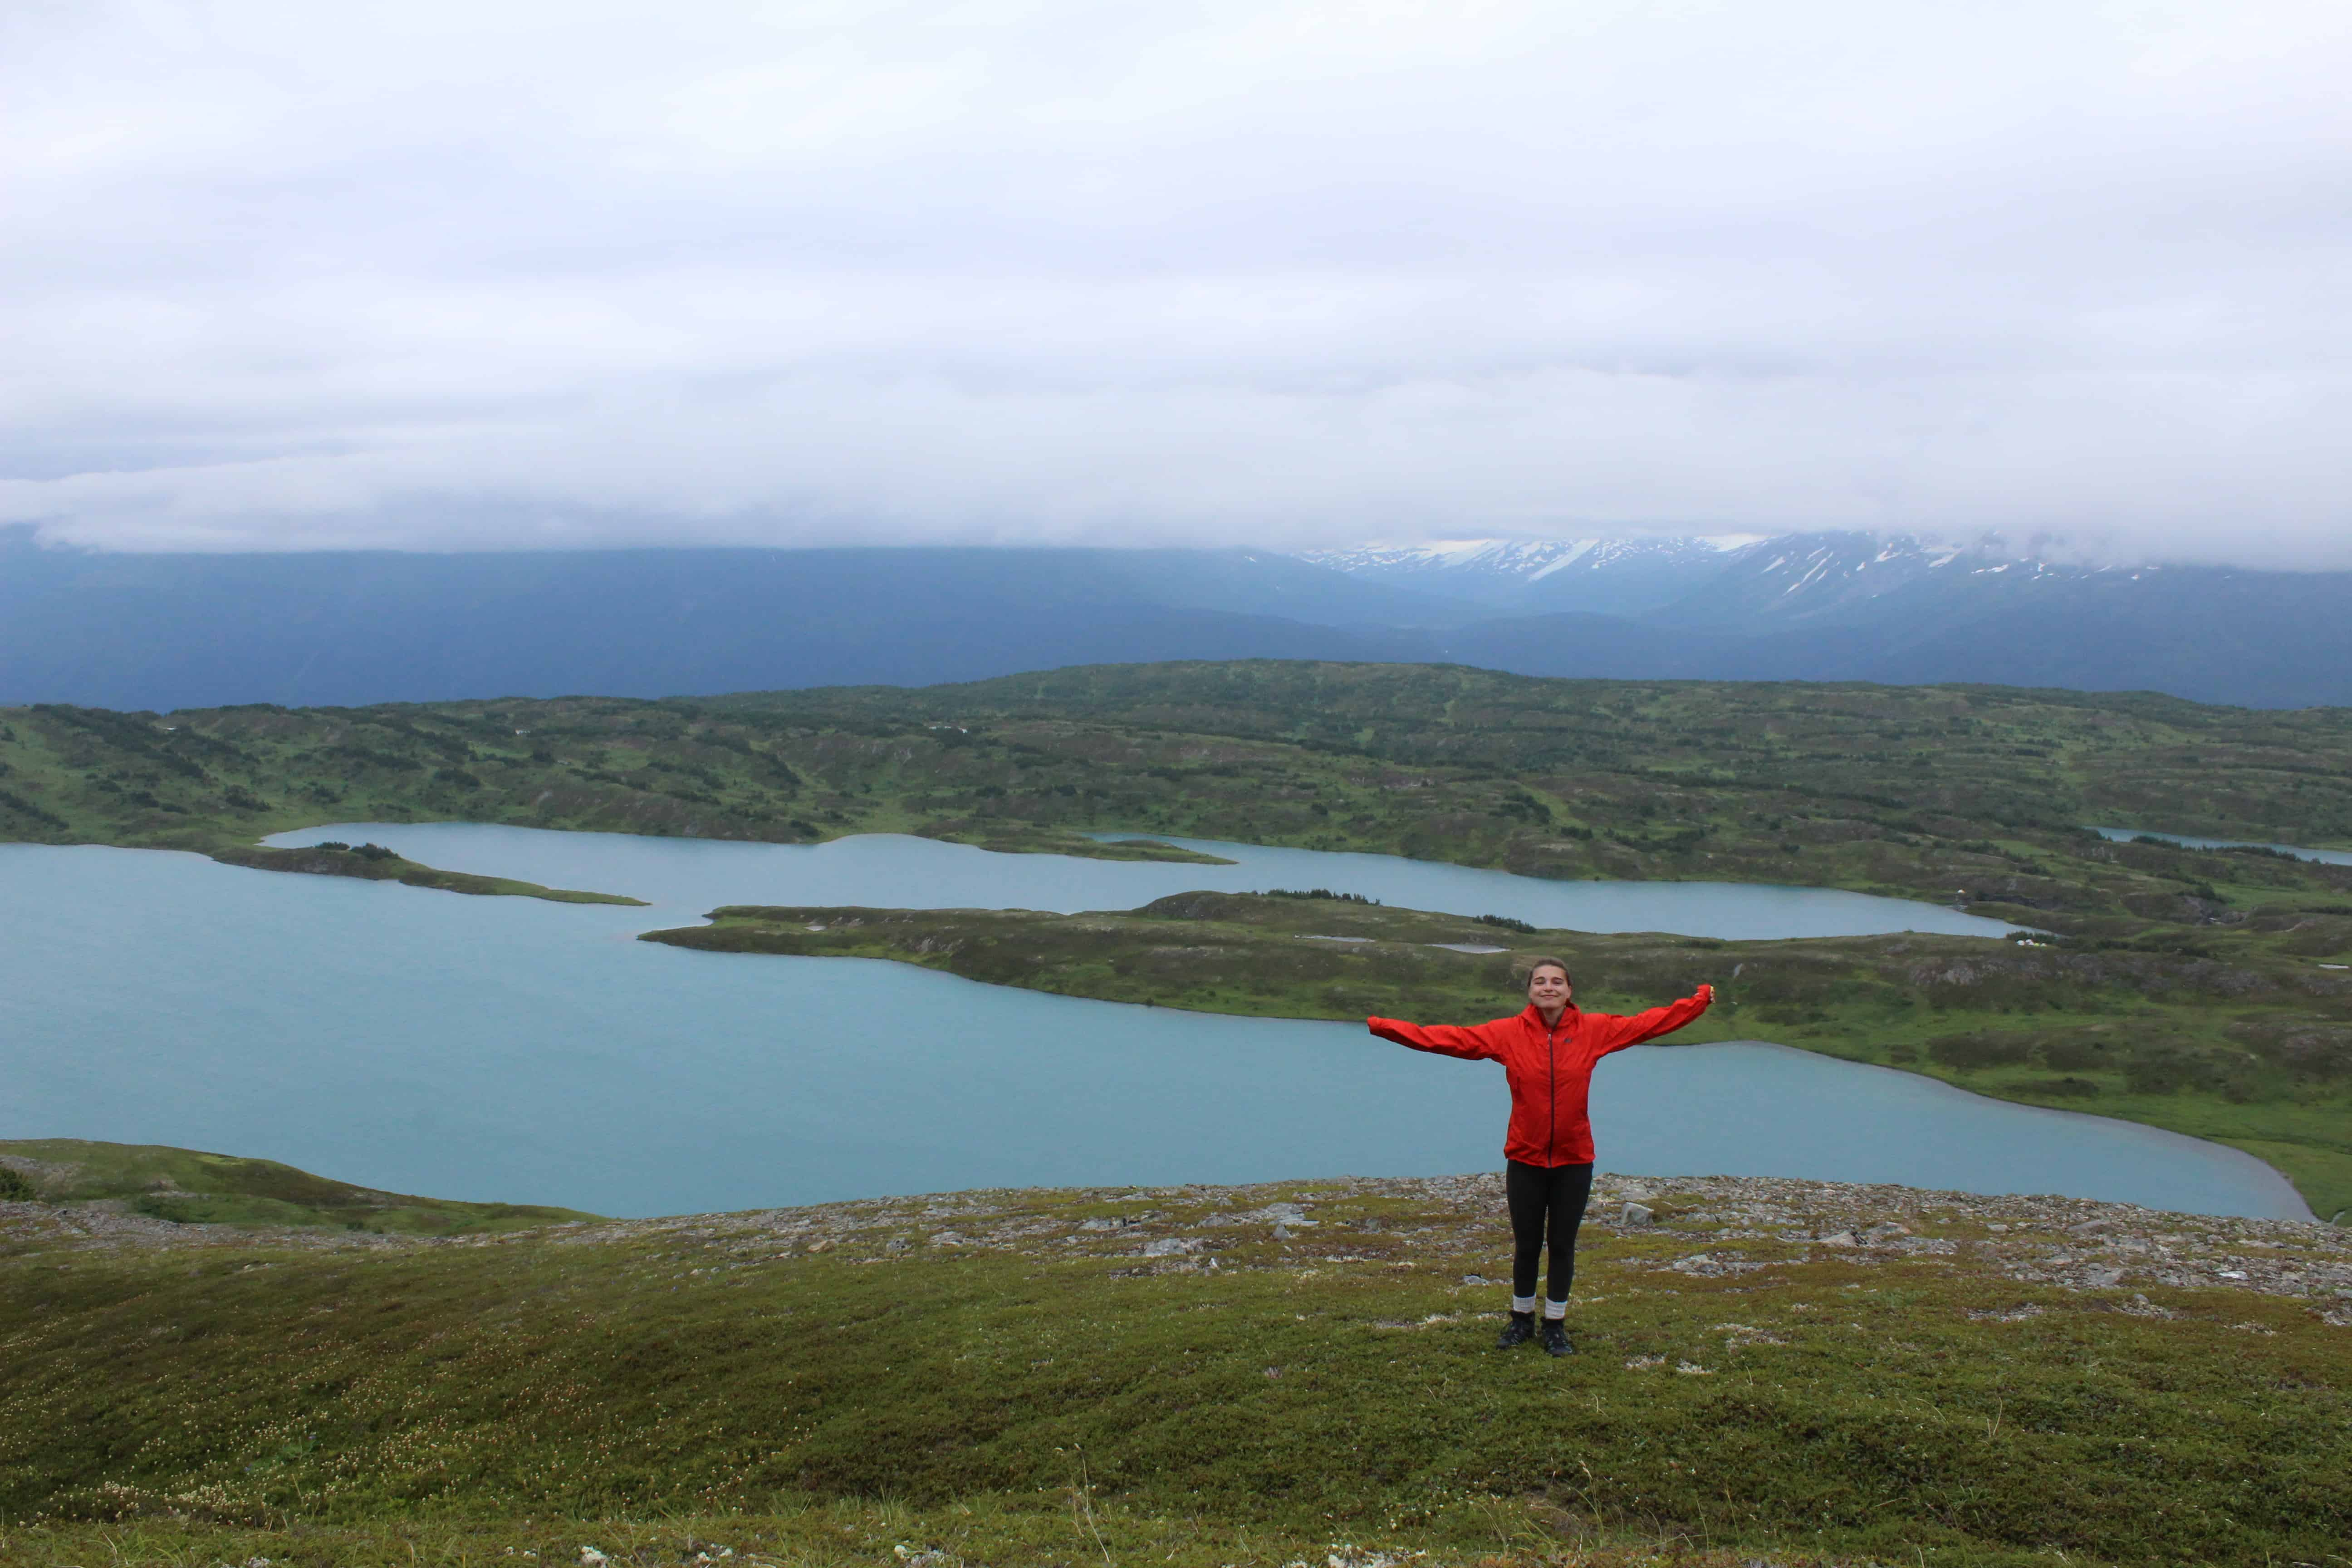 First Summer Immersive Learning Trip to Alaska